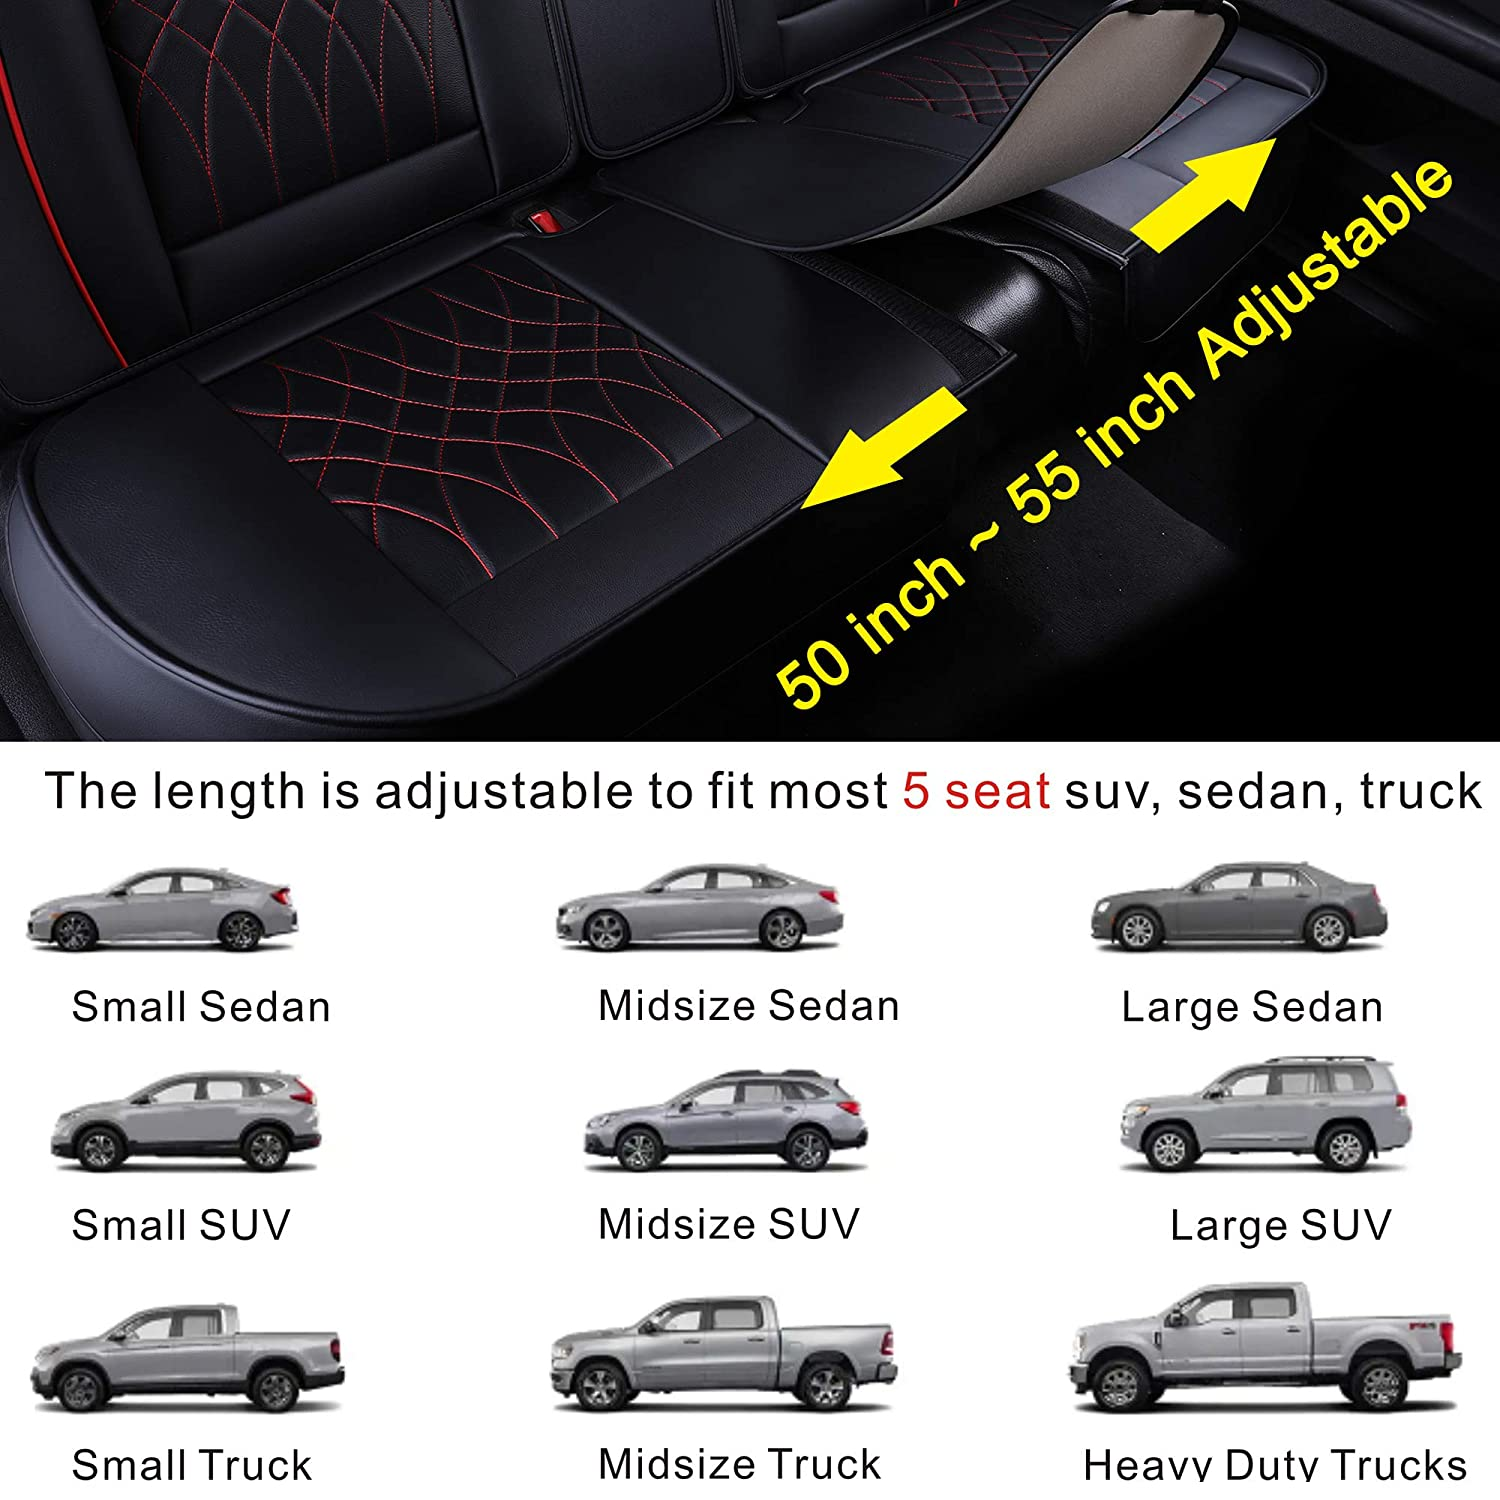 Black Full Set LUCKYMAN CLUB 5 Car Seat Covers Full Set with Waterproof Leather Universal for Sedan SUV Truck Fit for Most Hyundai Kia Honda Mazda Nissan Toyota Chevy